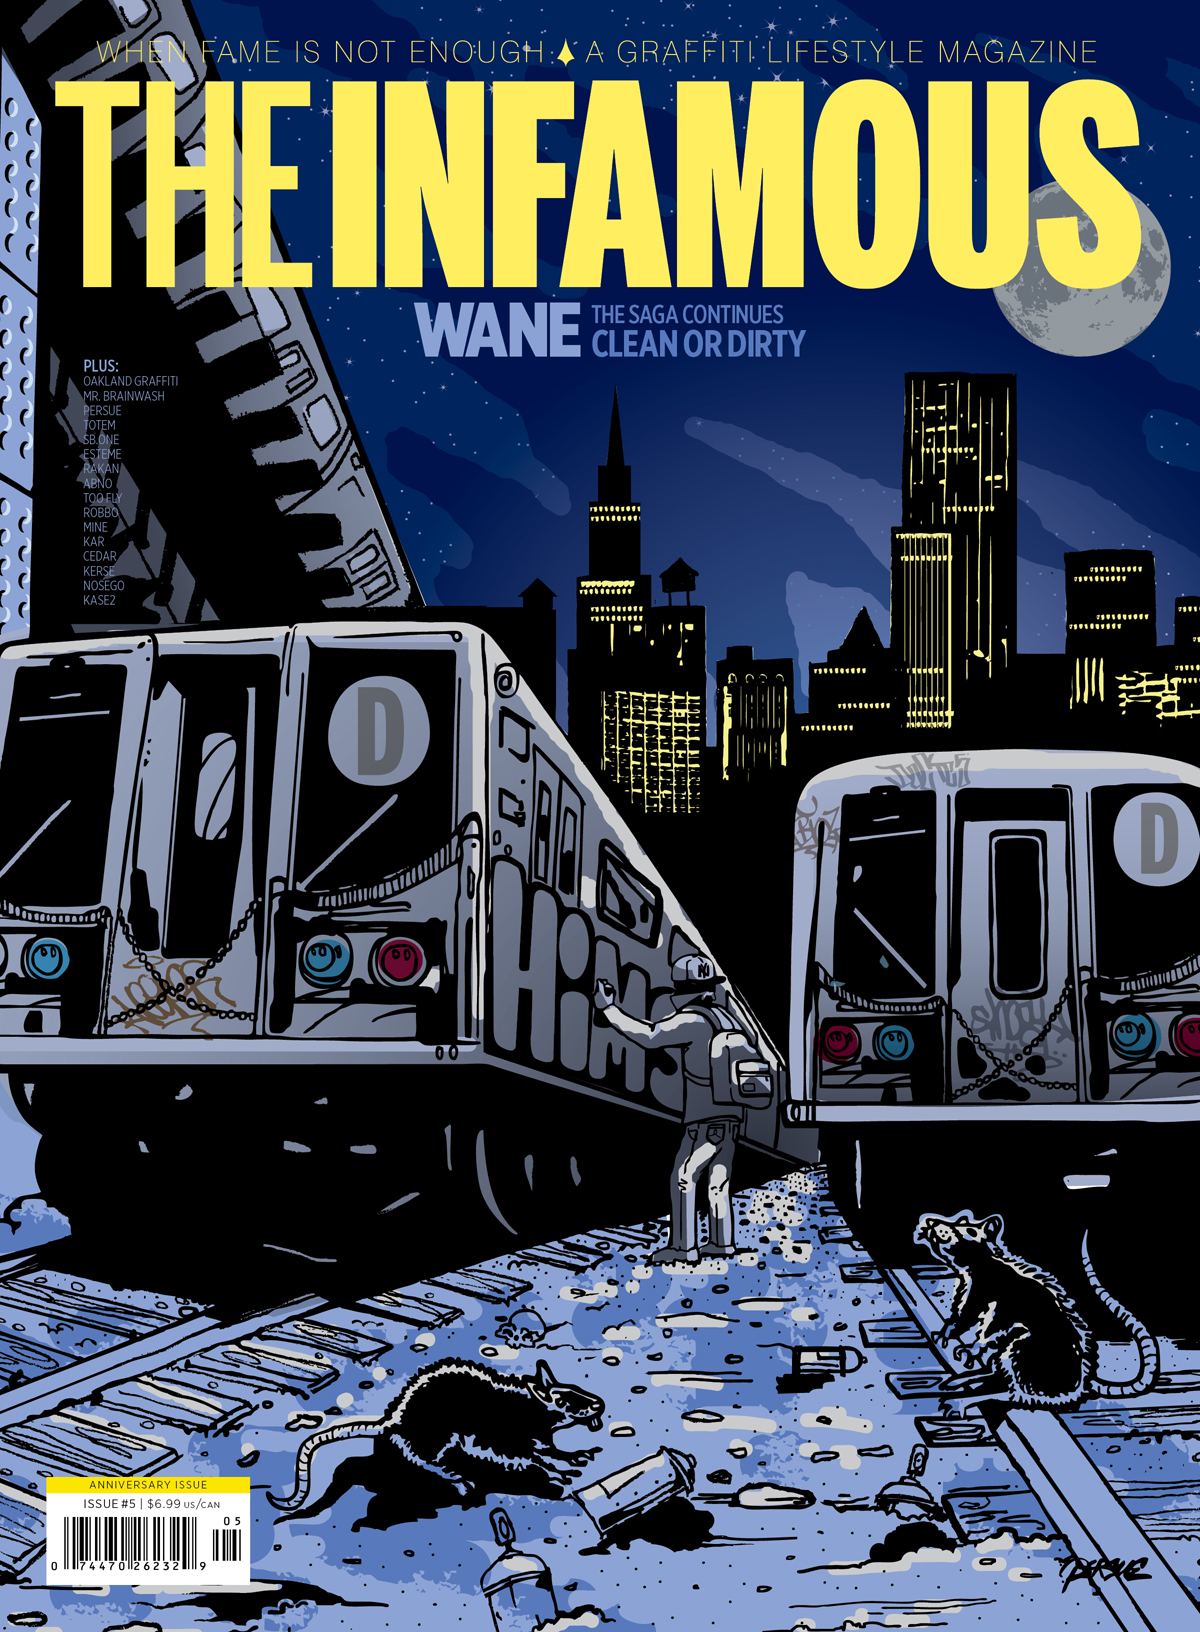 Cover of Issue 5 of The Infamous magazine, 2011. Illustration by Persue.